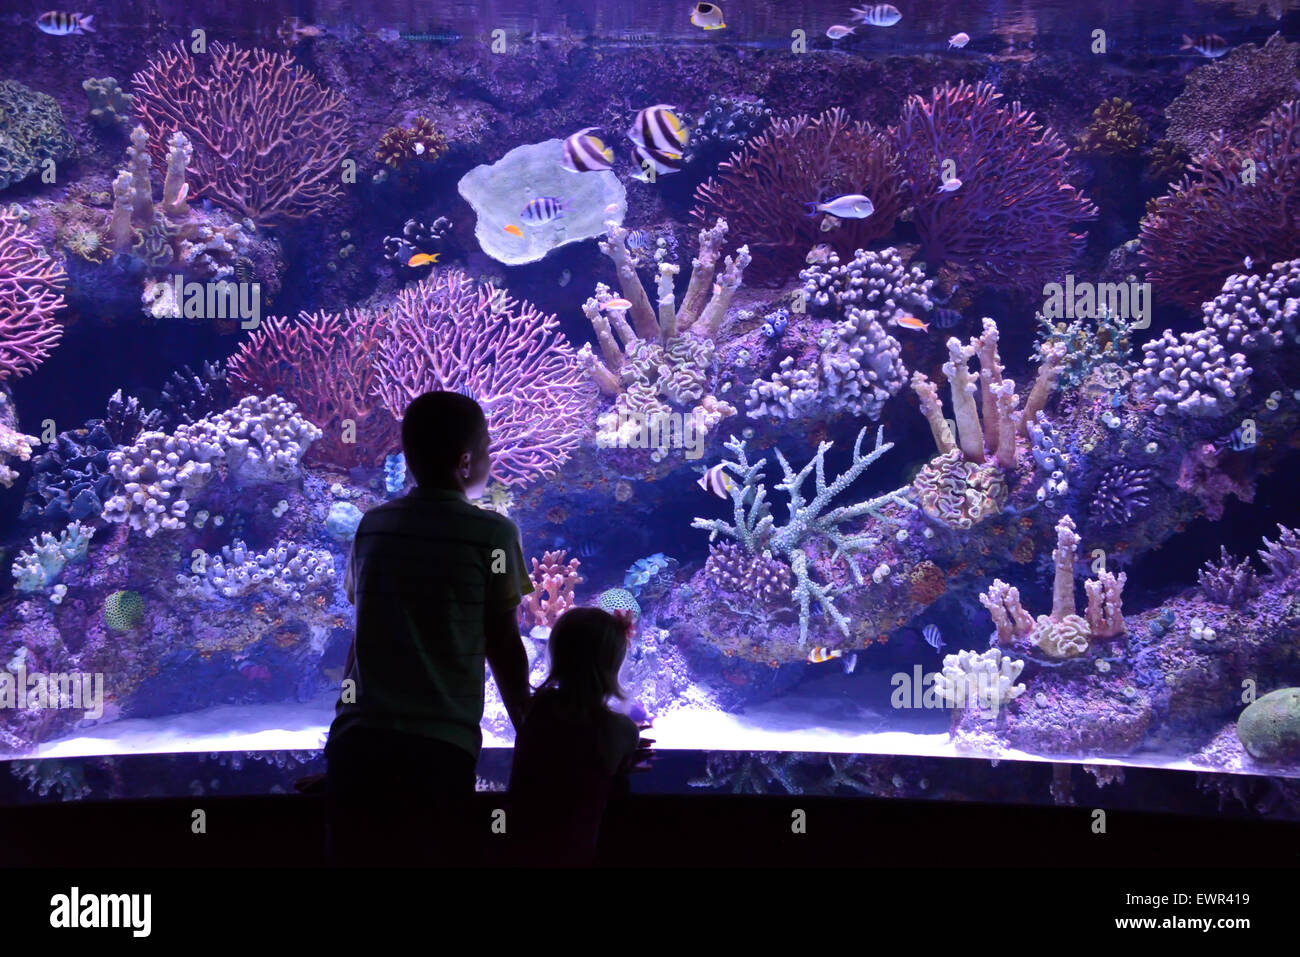 people look at a large aquarium - Stock Image